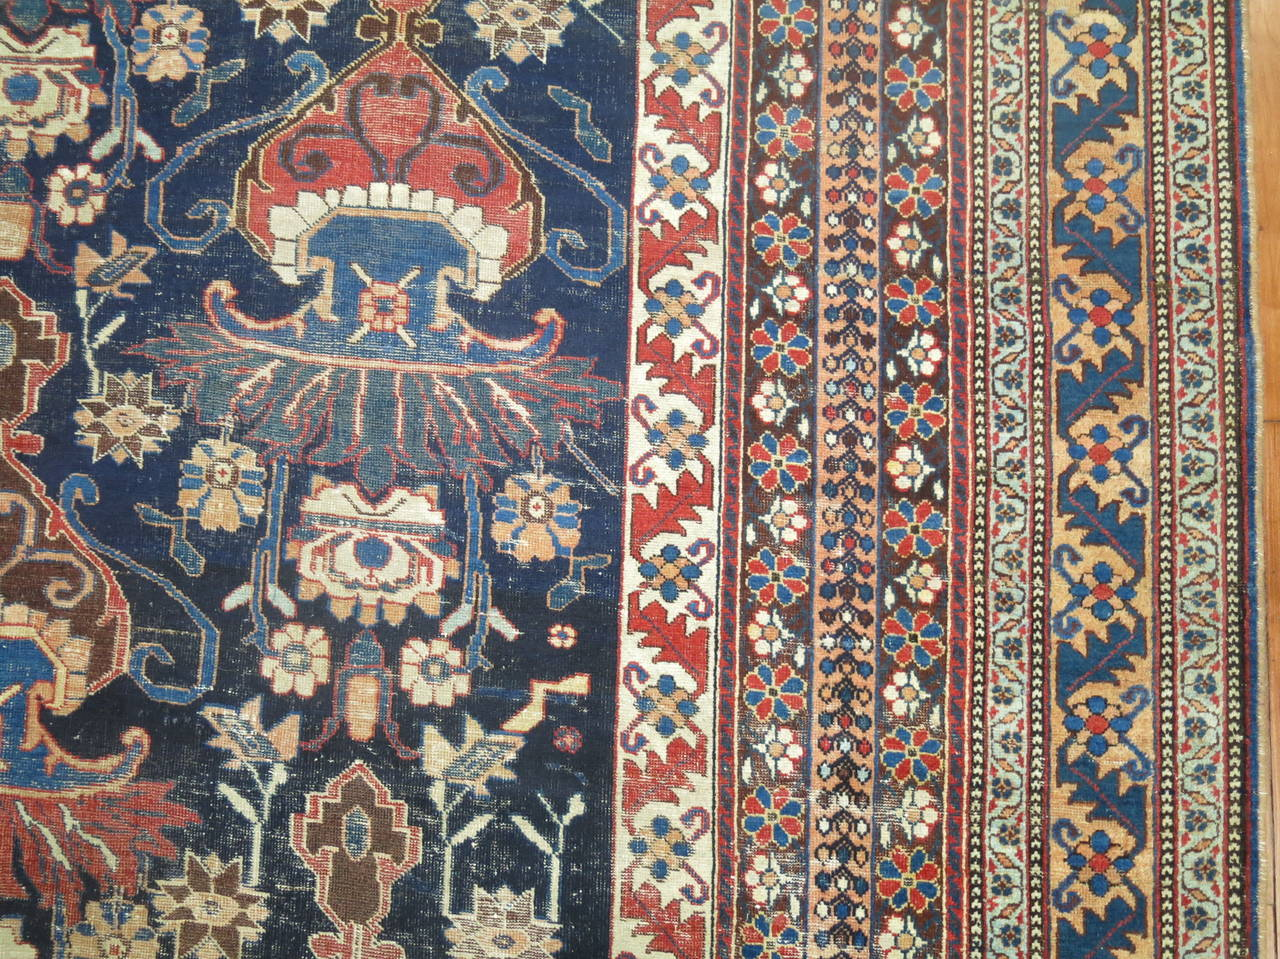 Antique Persian Afshar Oversize Rug 6